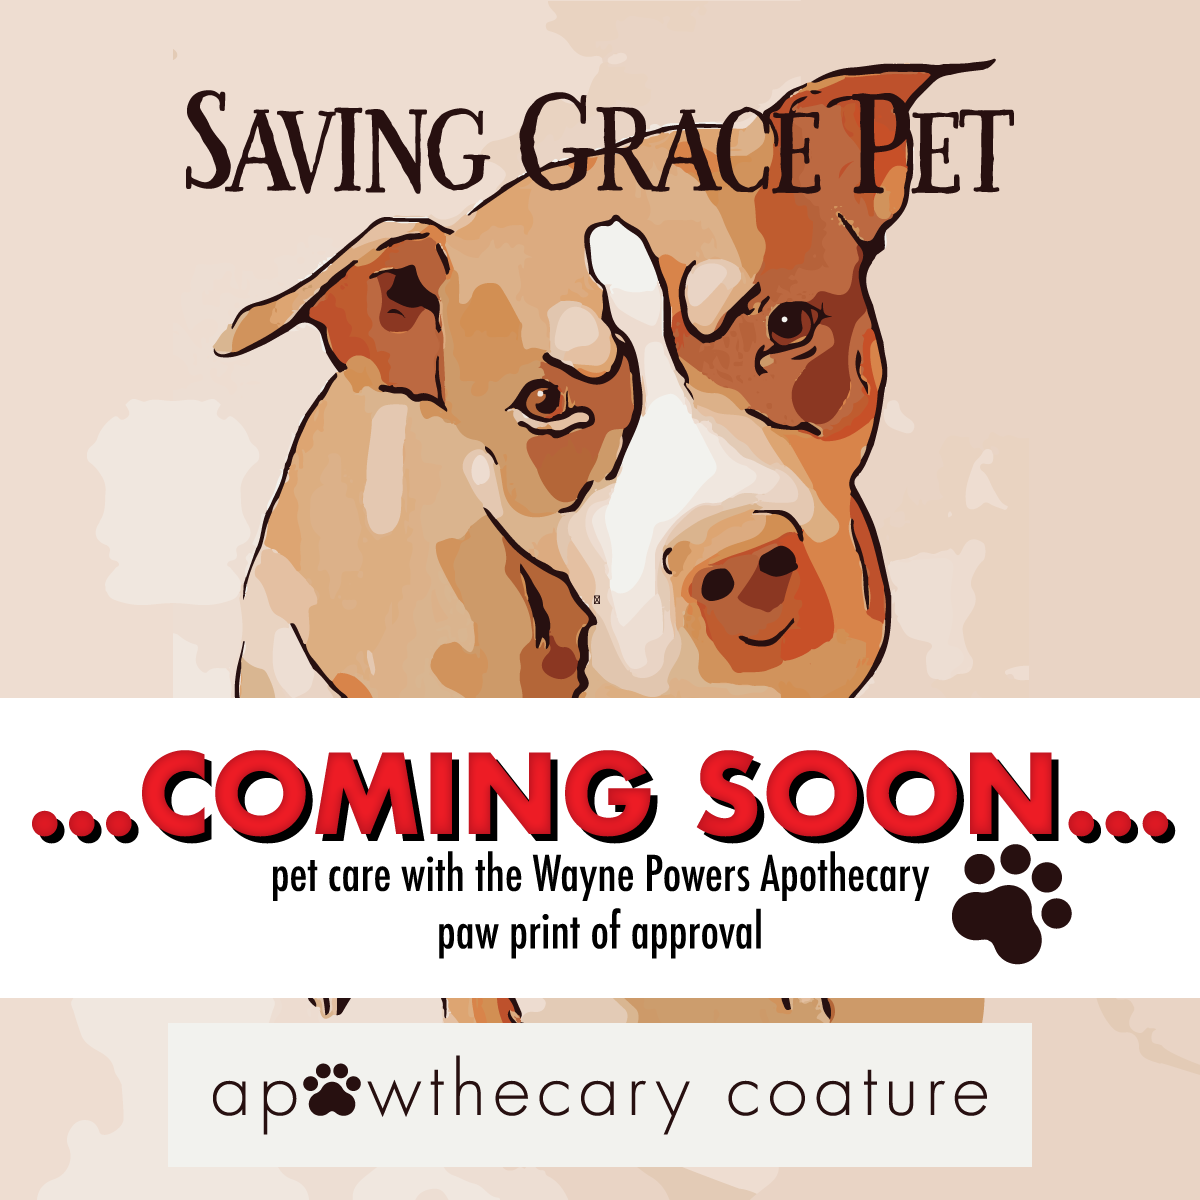 Saving Grace—Pet Care by Wayne Powers Apothecary—is coming soon!